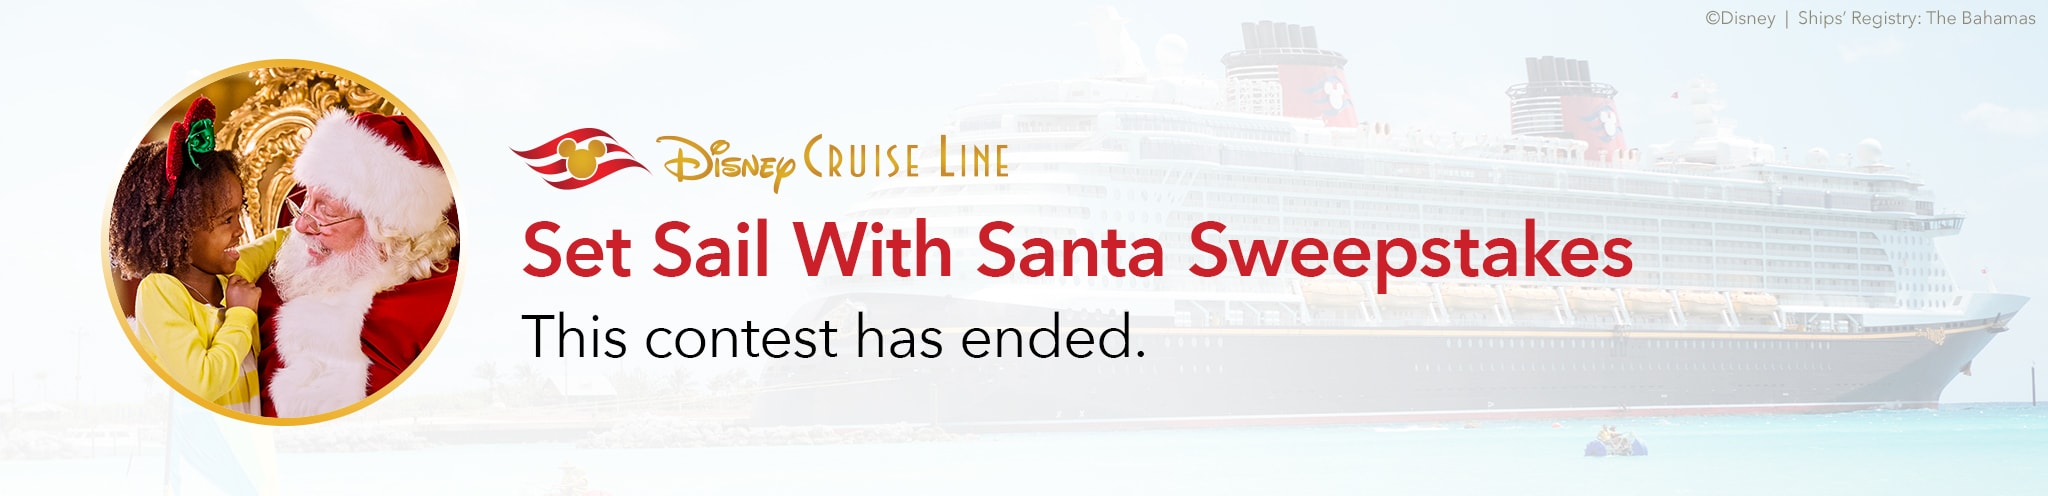 Disney Cruise Line - Set Sail With Santa Sweepstakes - This contest has ended.